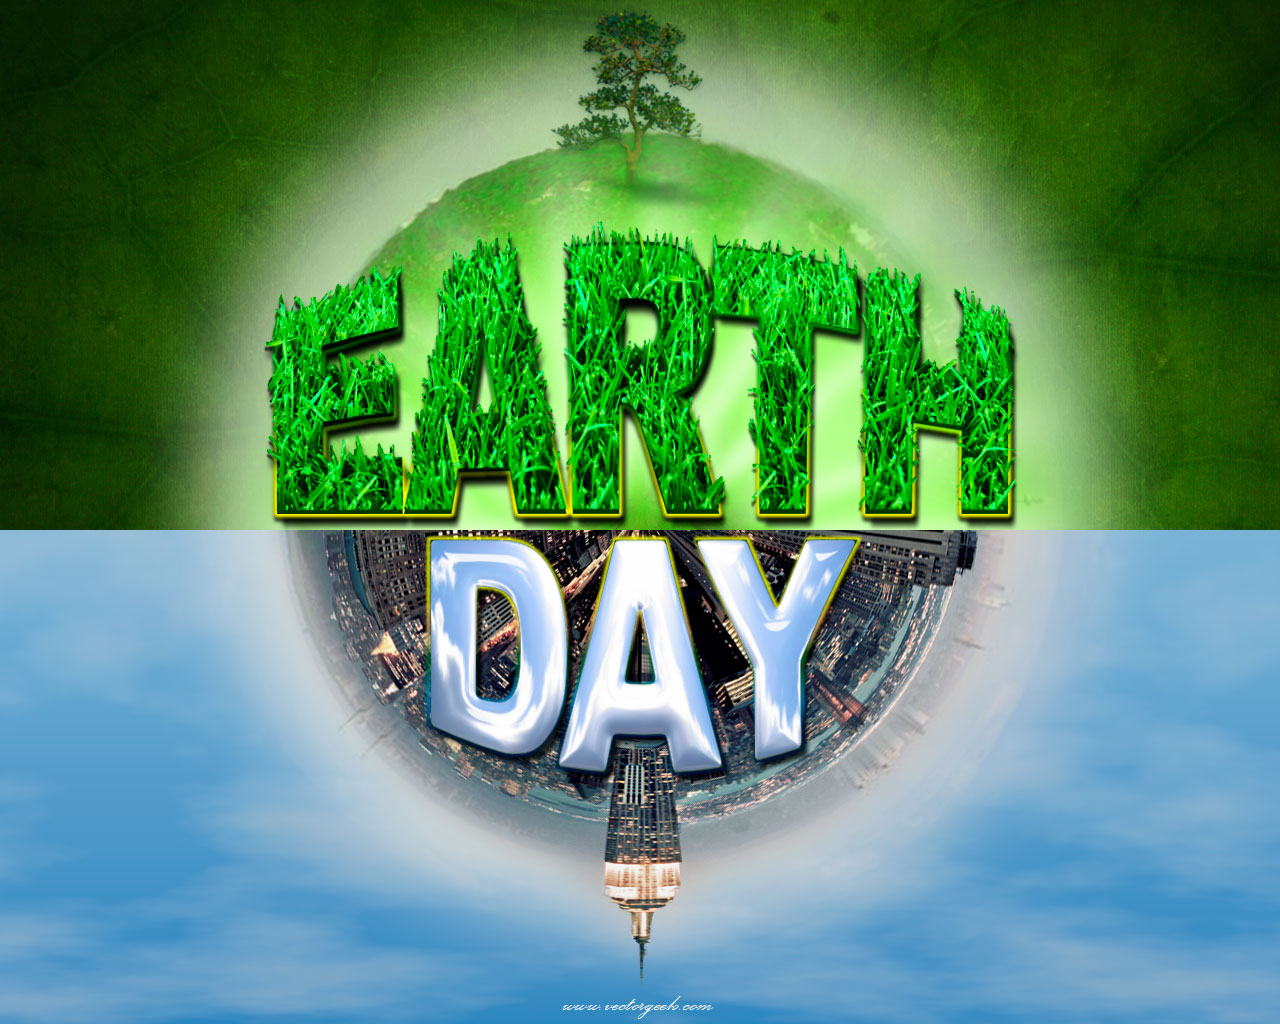 Earth Day Quotes: PicturesPool: Earthday Wallpapers,Quotes